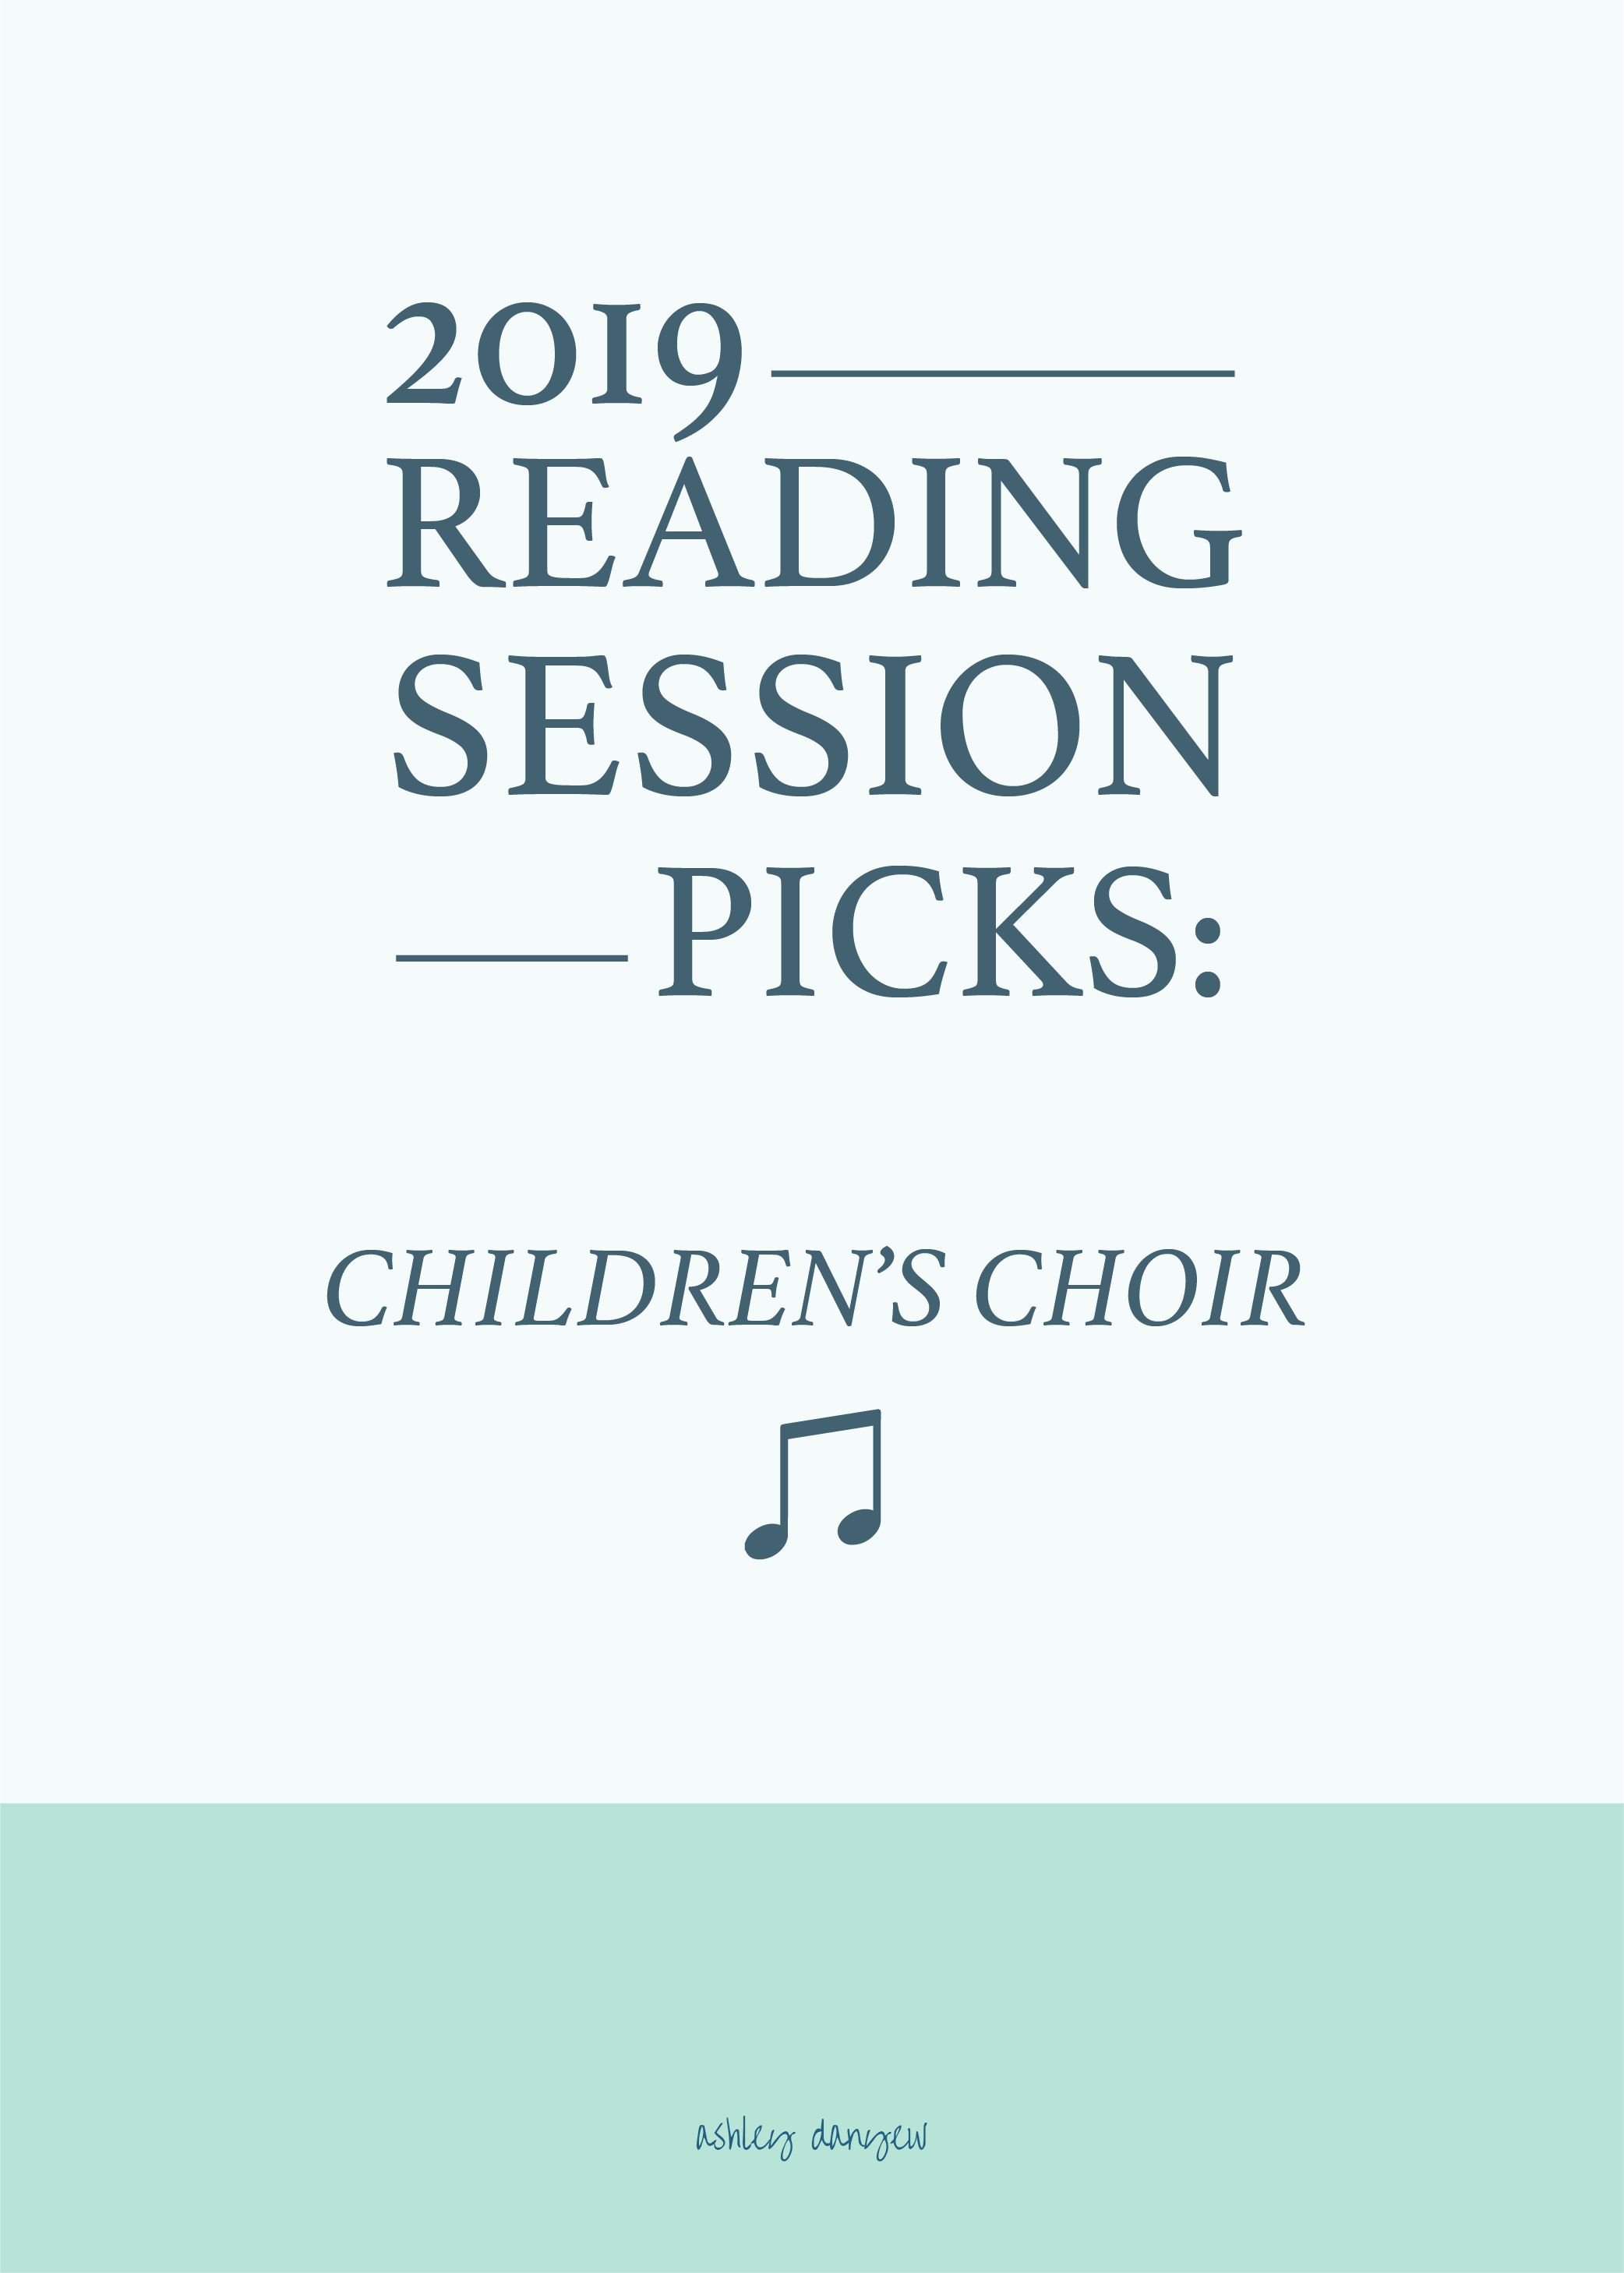 2019 Reading Session Picks: Children's Choir